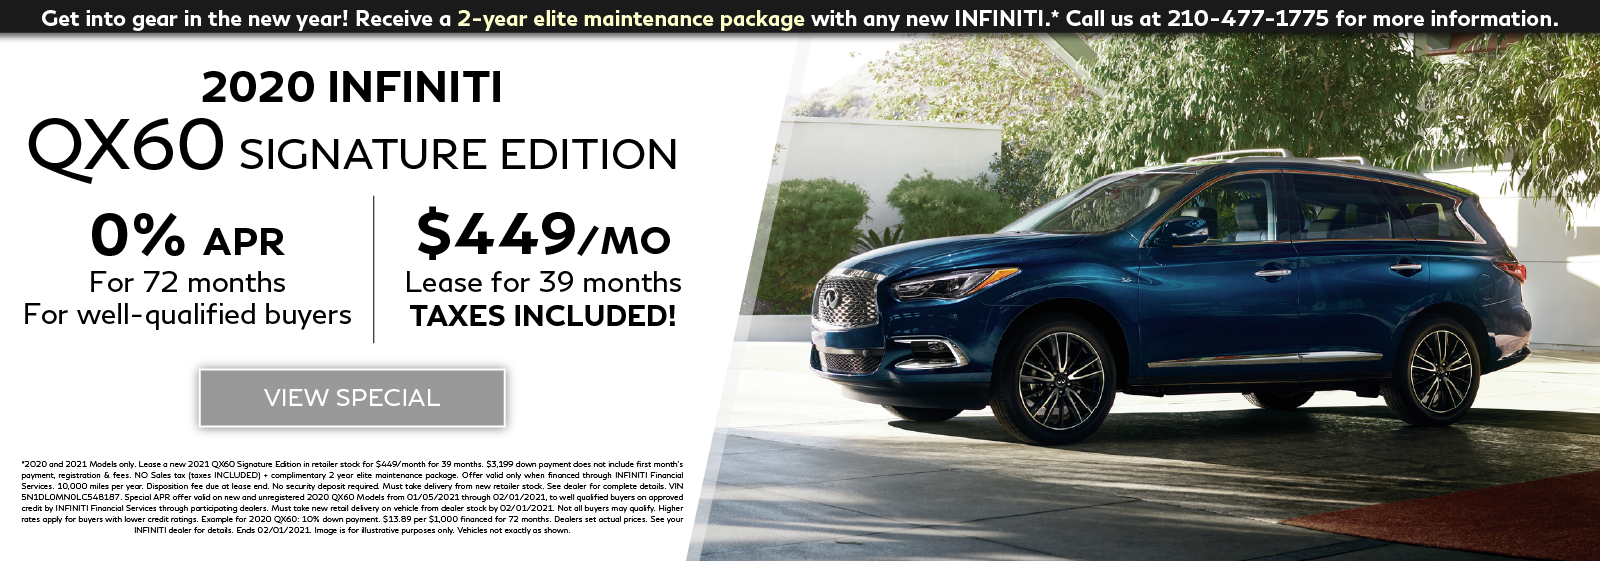 Well-qualified customers can lease a new 2020 QX60 Signature Edition for $449 per month for 39 months OR get 0% APR financing for 72 months plus get a 2-year elite maintentenance package. Click to view special.